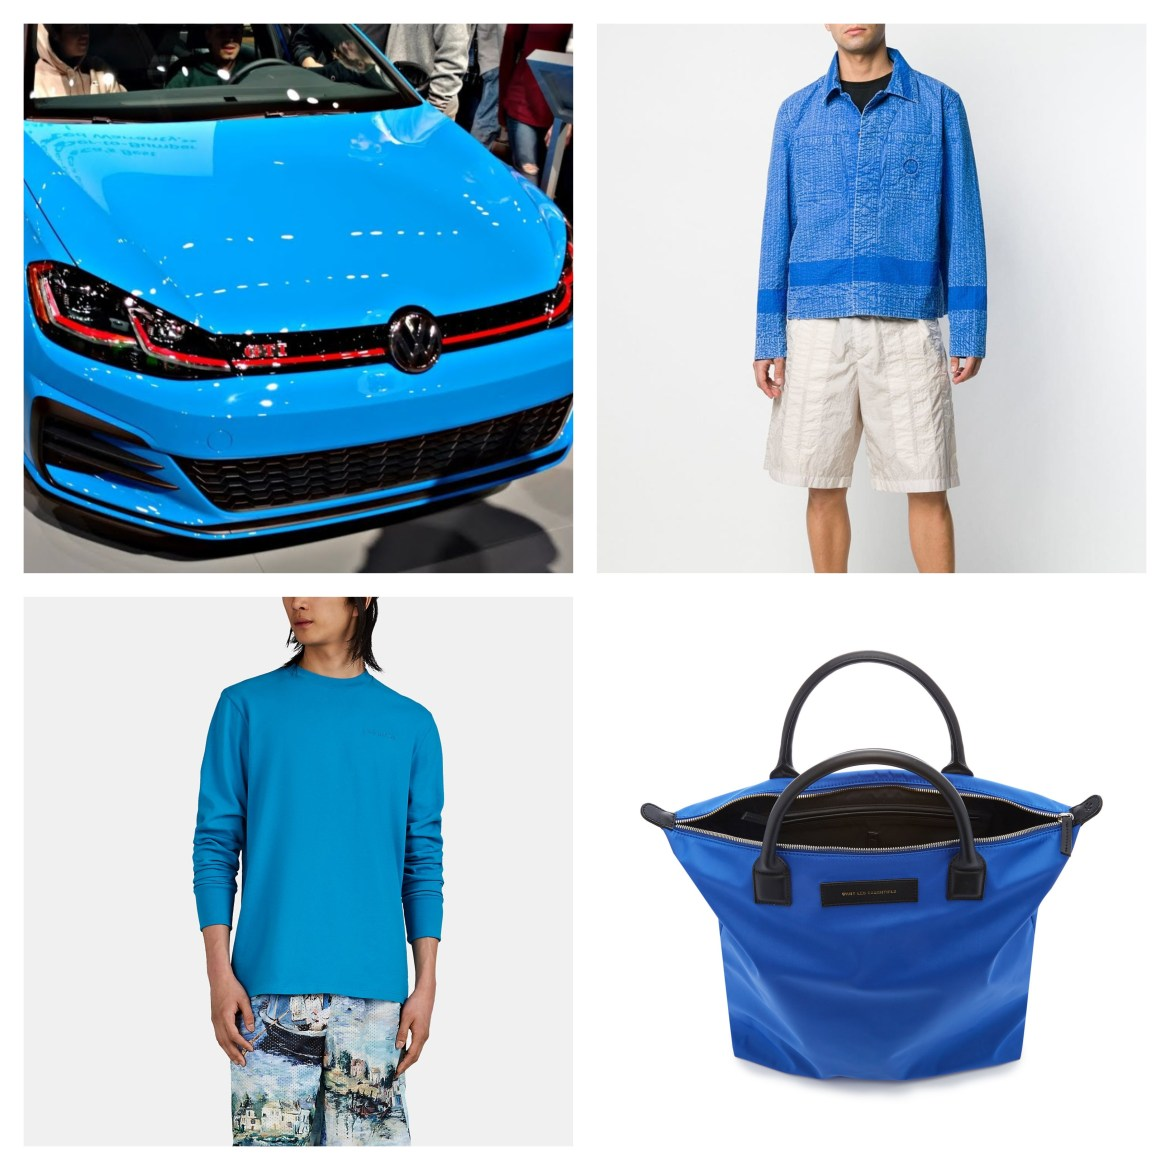 Clockwise from top left: 2019 Volkswagen GTI Rabbit Edition in cornflower blue, Craig Green work jacket, WANT Les Essentiels O'Hare canvas and leather tote, and Aimé Leon Dore logo-embroidered longsleeve t-shirt